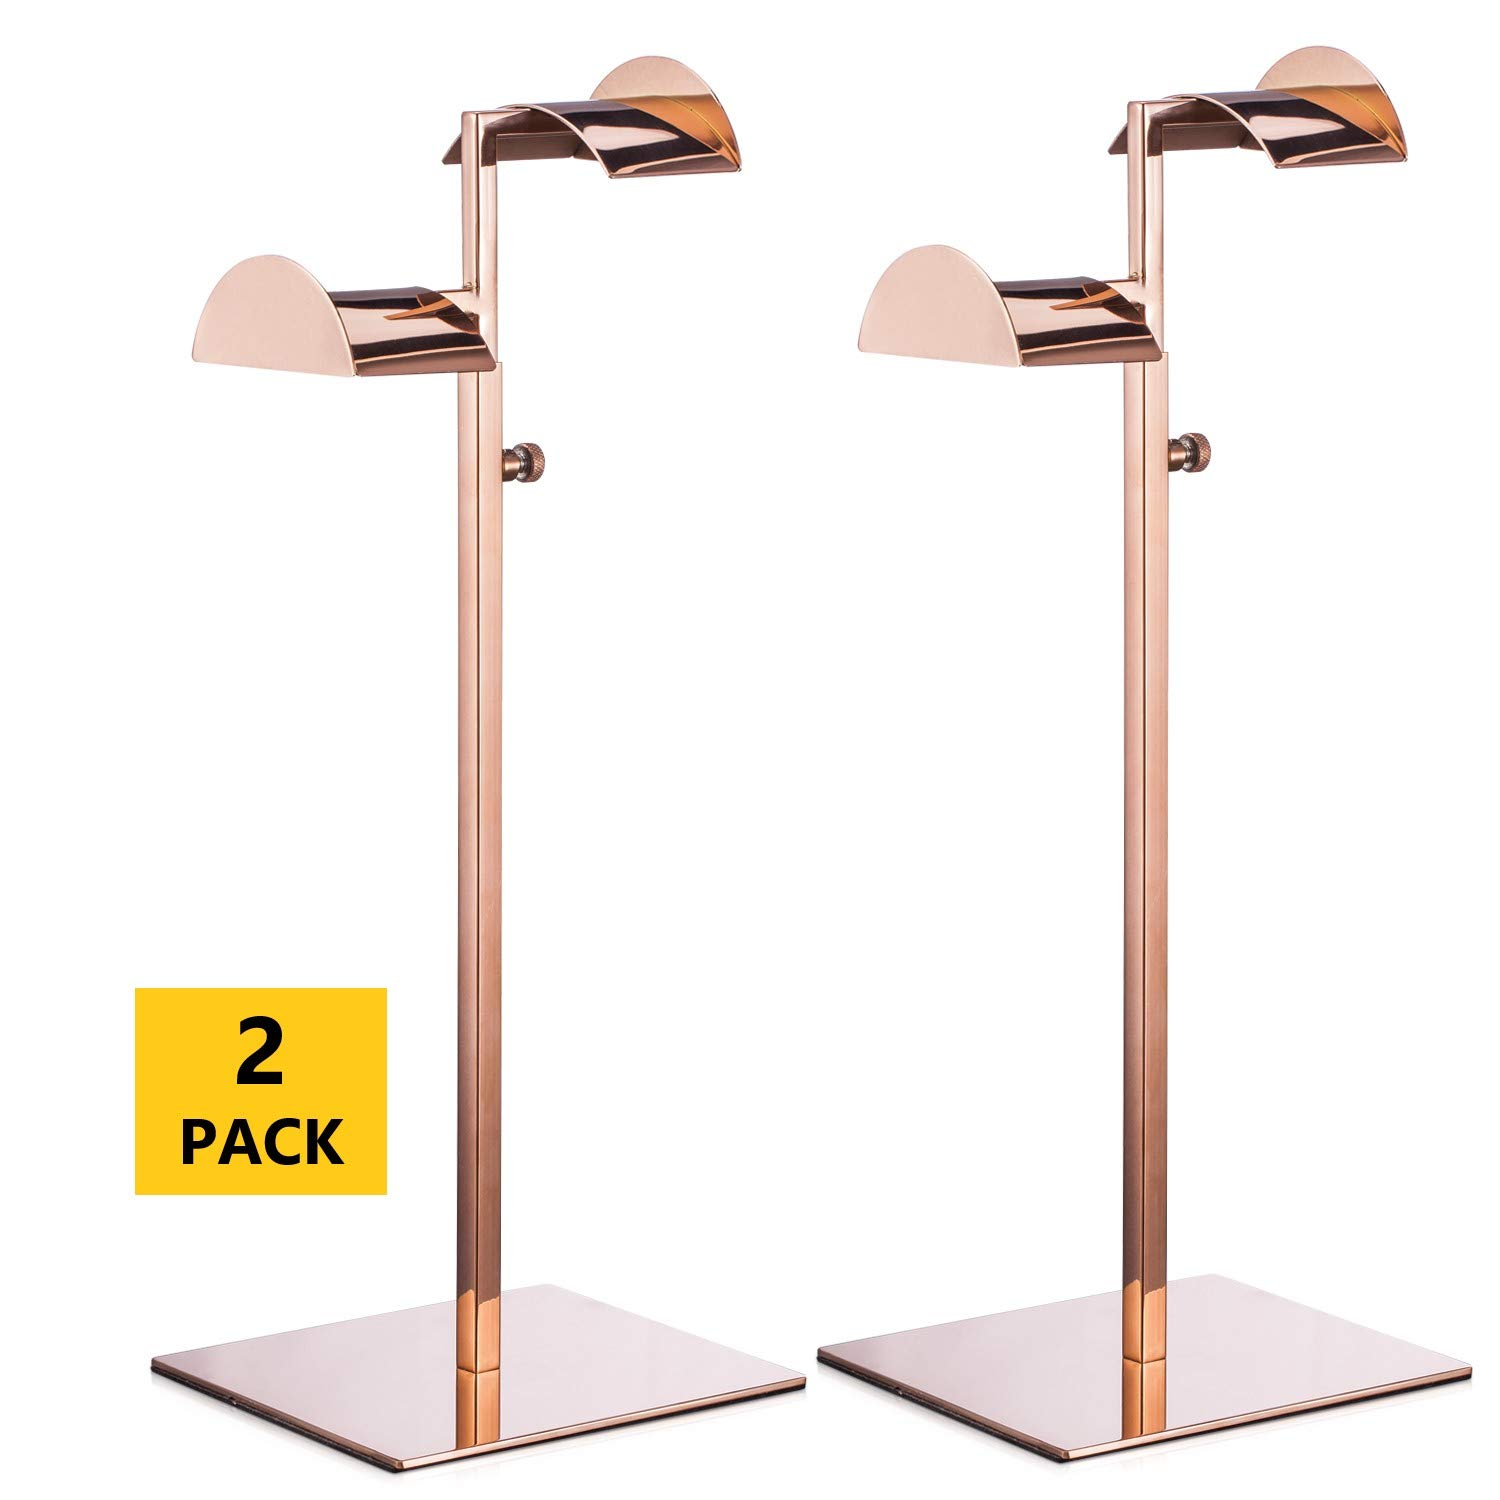 Polmart Adjustable Double Arm Handbag Purse Display Stand with Crescent Handles, Rose Gold, Pack of 2